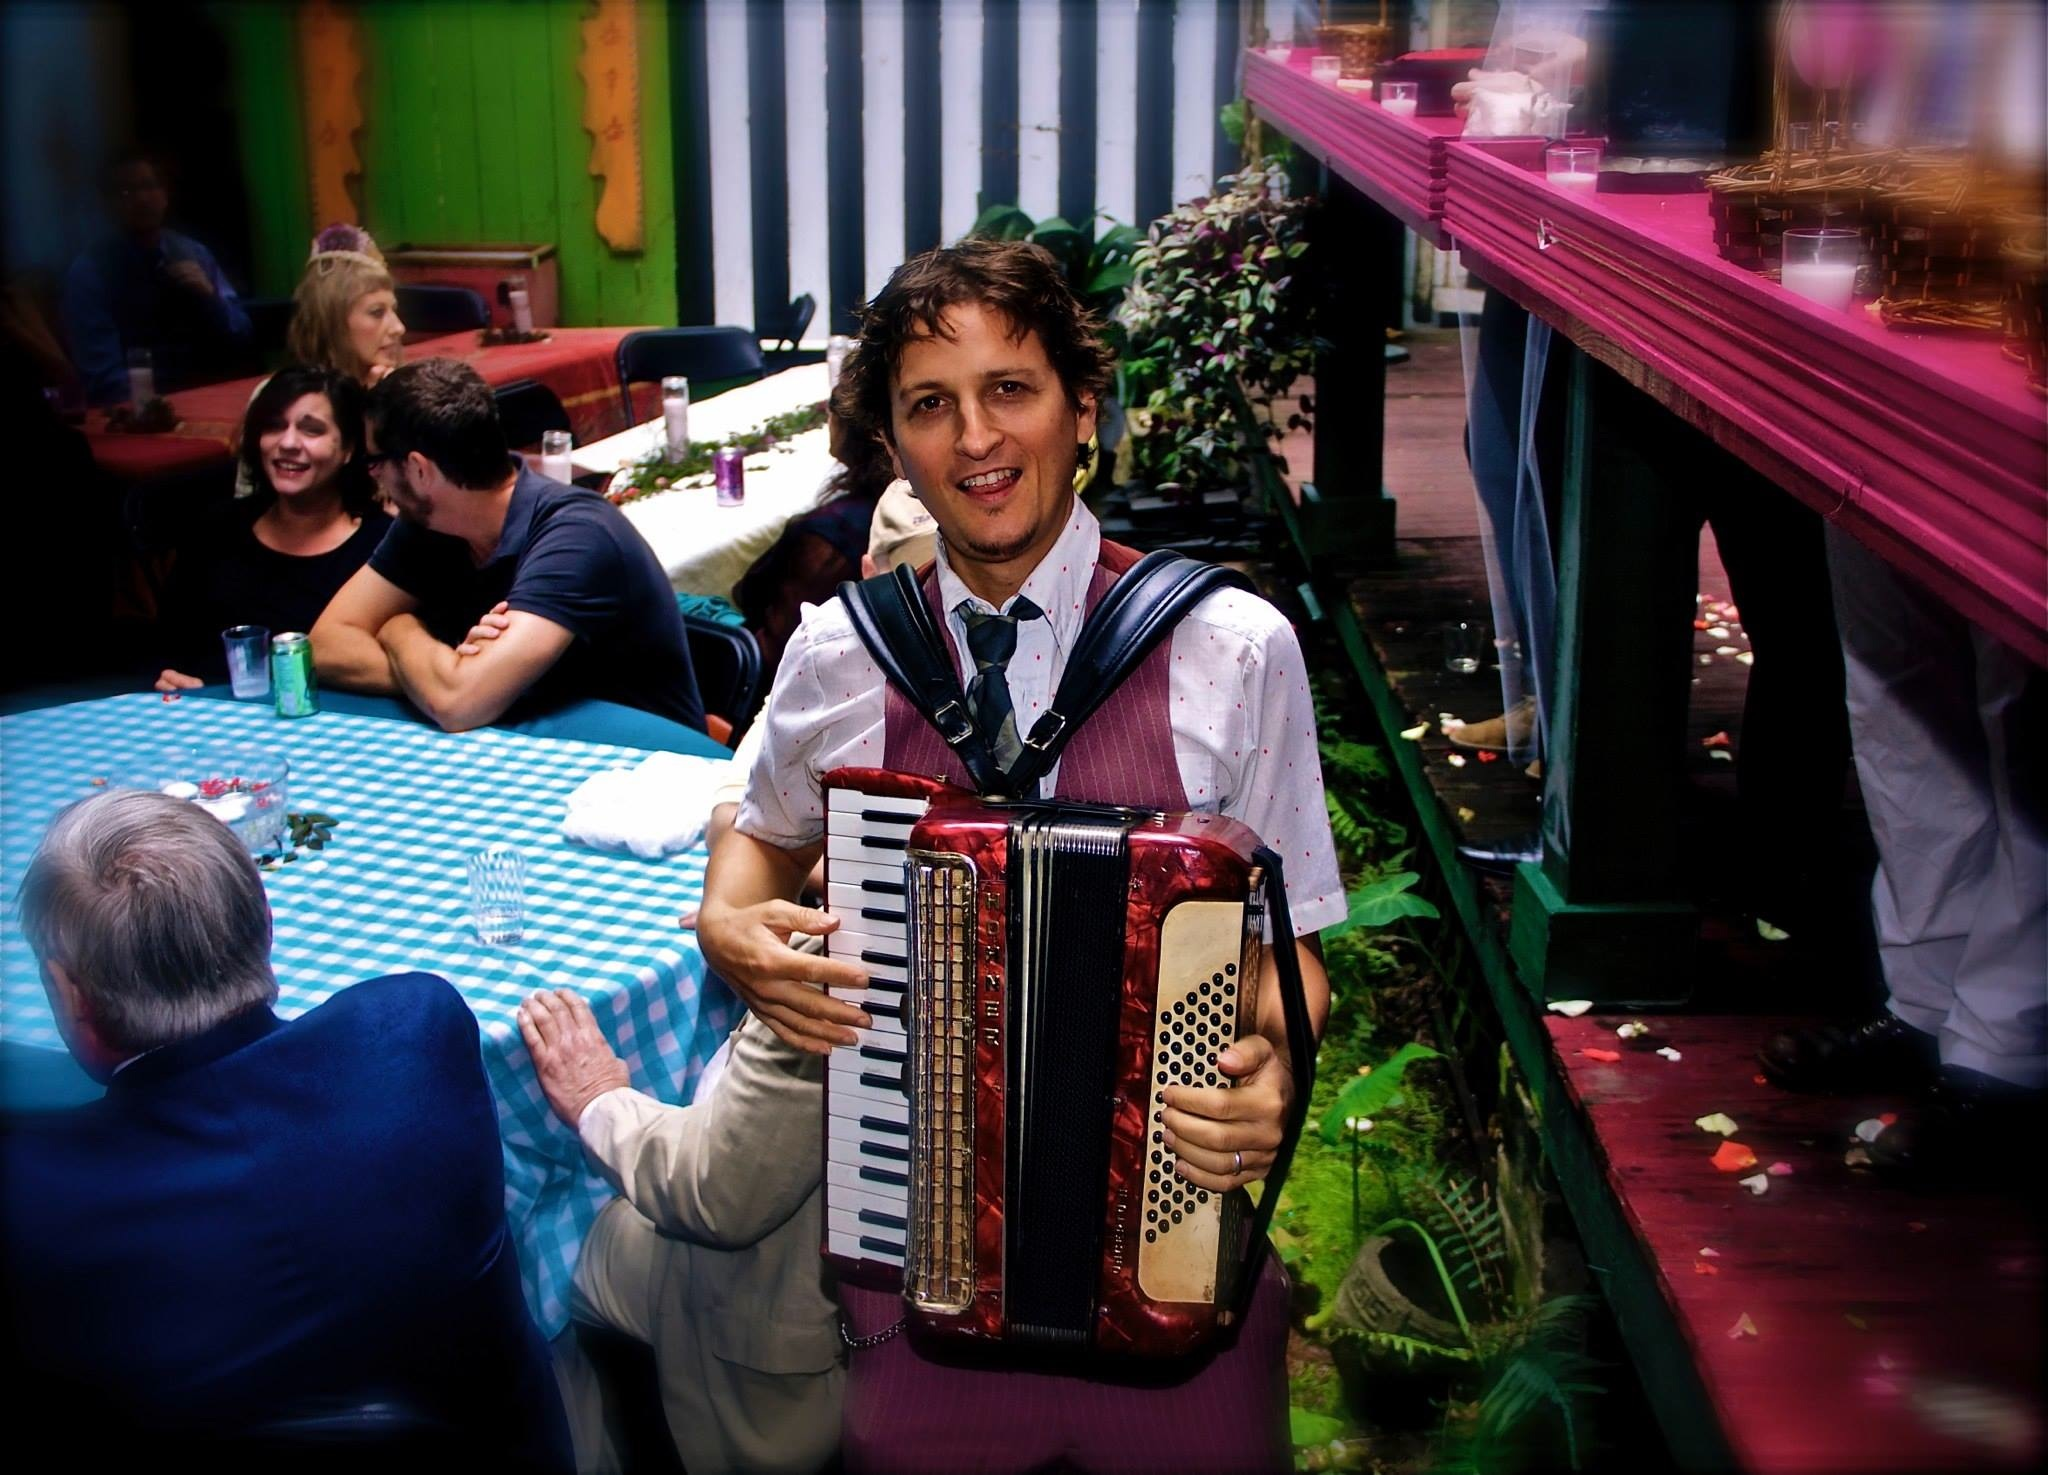 greg-schatz-accordion-at-outdoor-reception